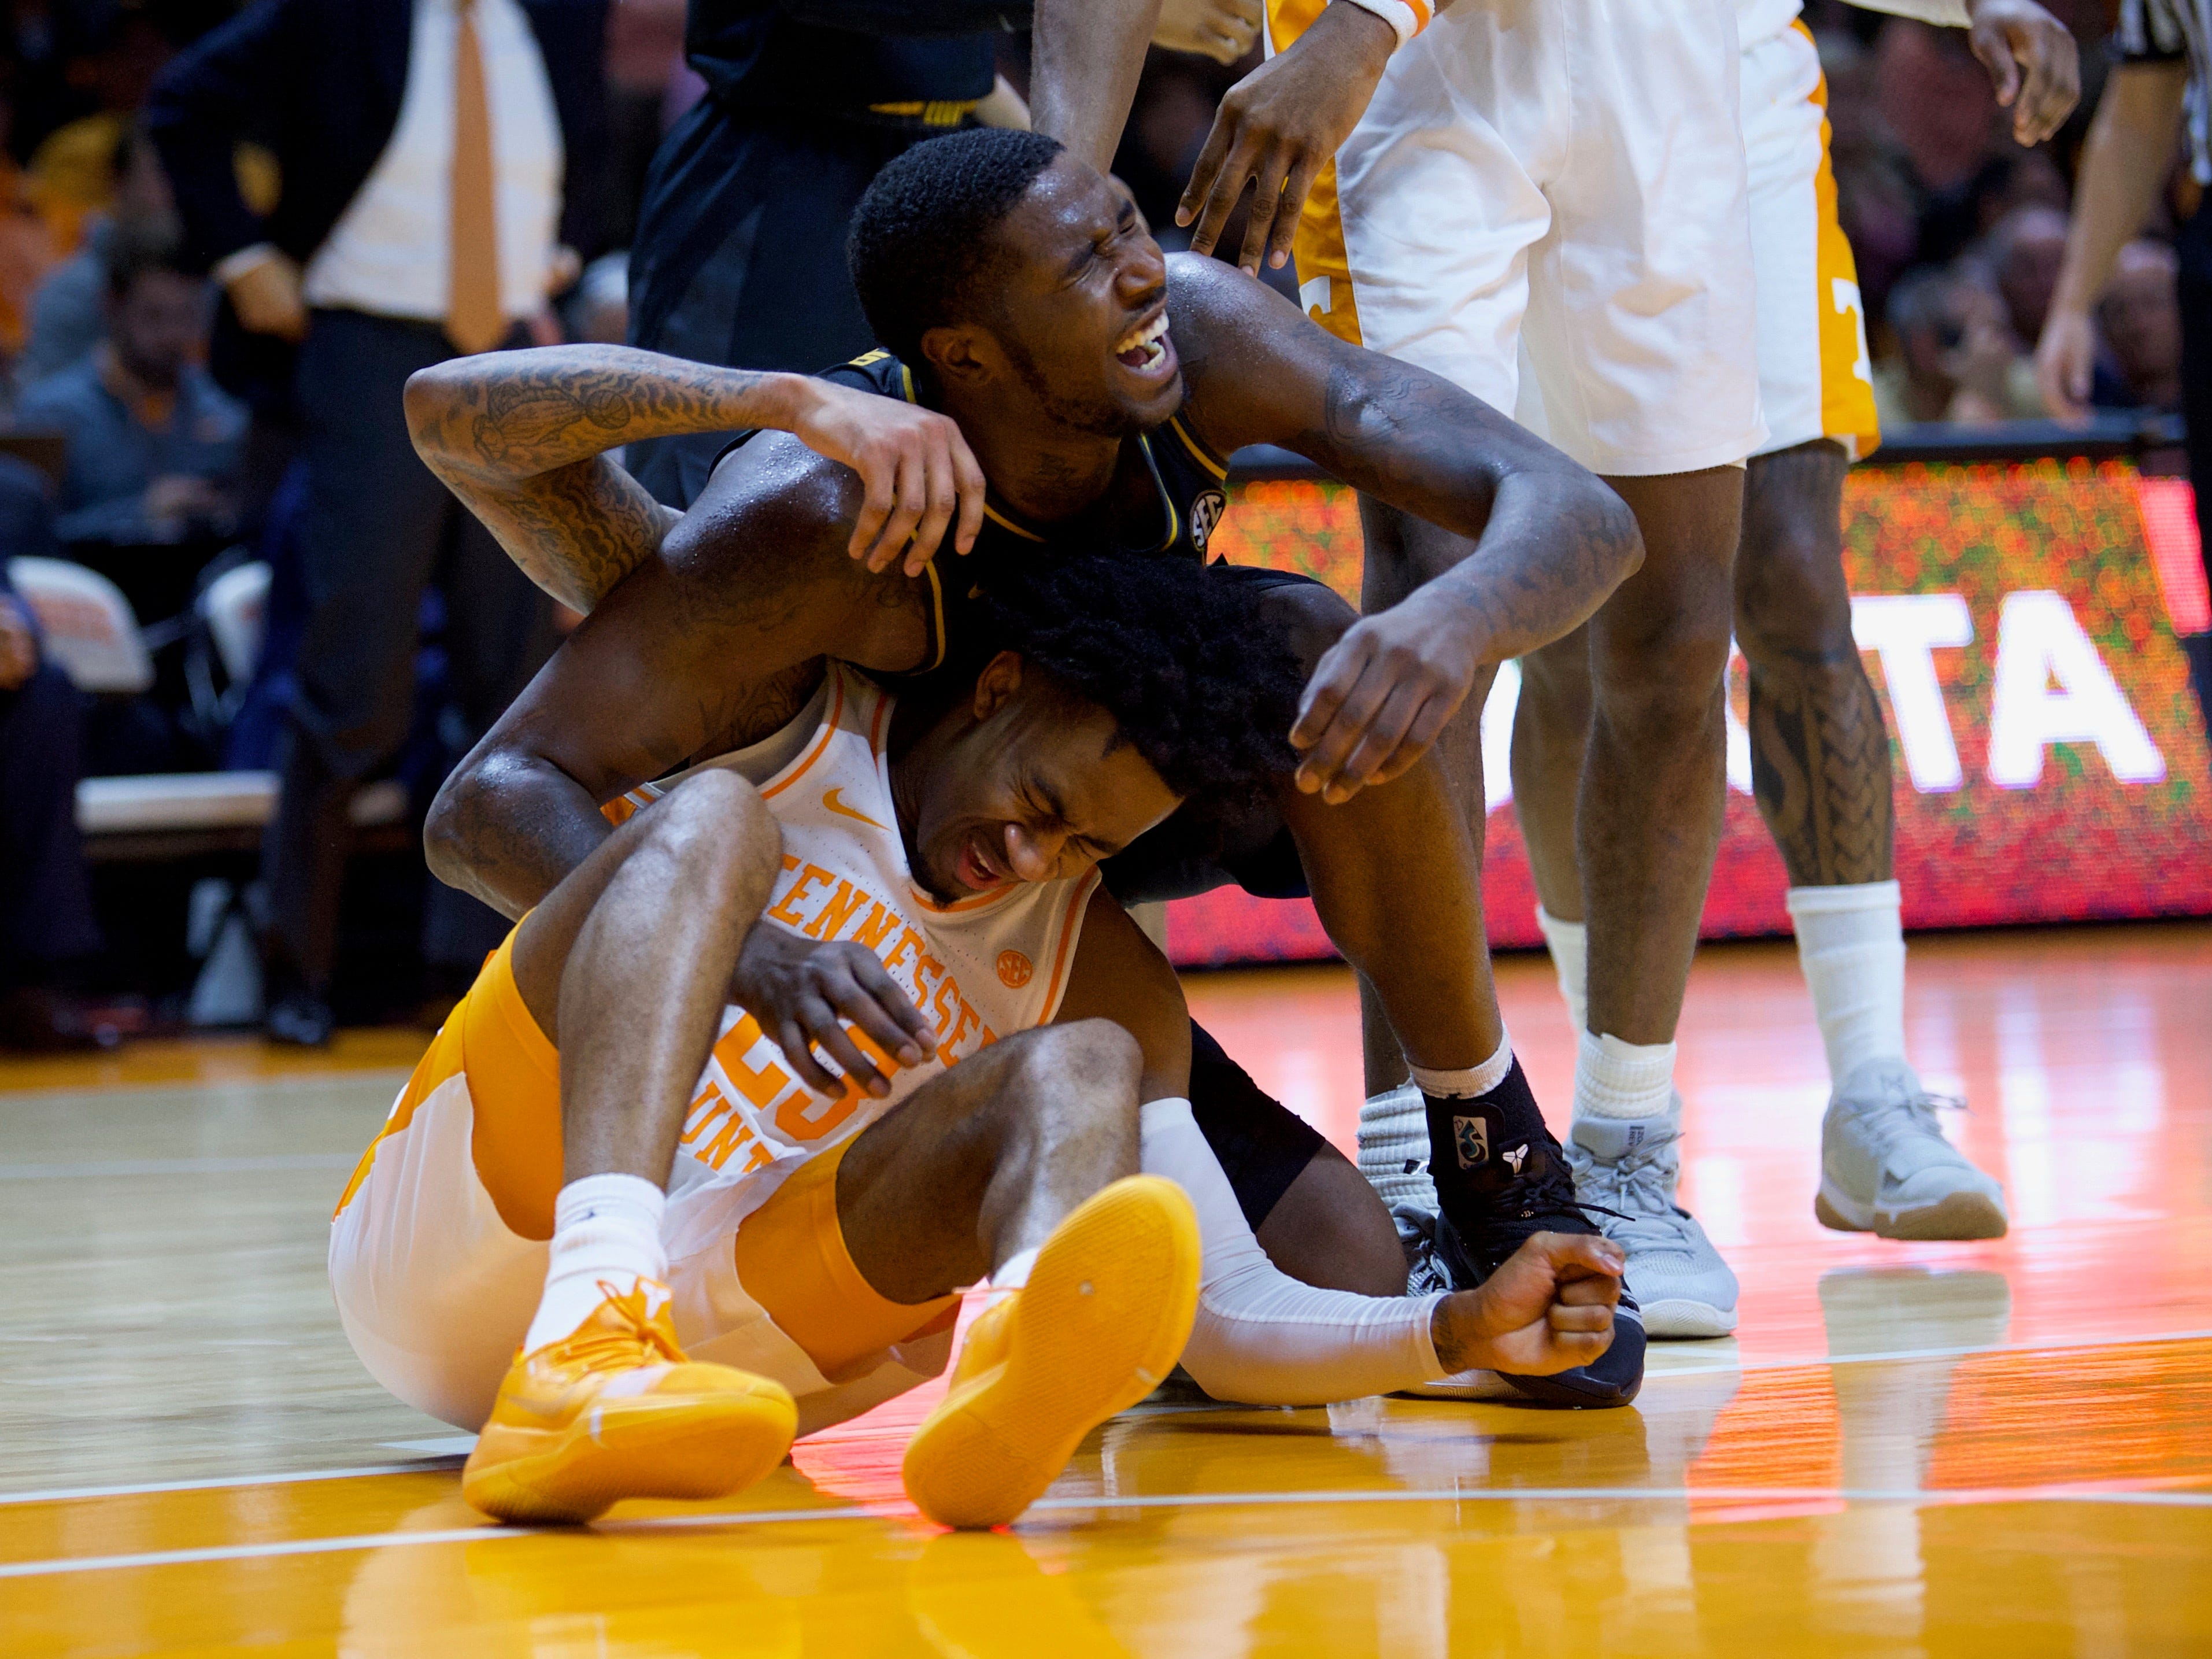 Tennessee's Jordan Bowden (23) and Missouri's Jeremiah Tilmon (23) collide on Tuesday, February 5, 2019.